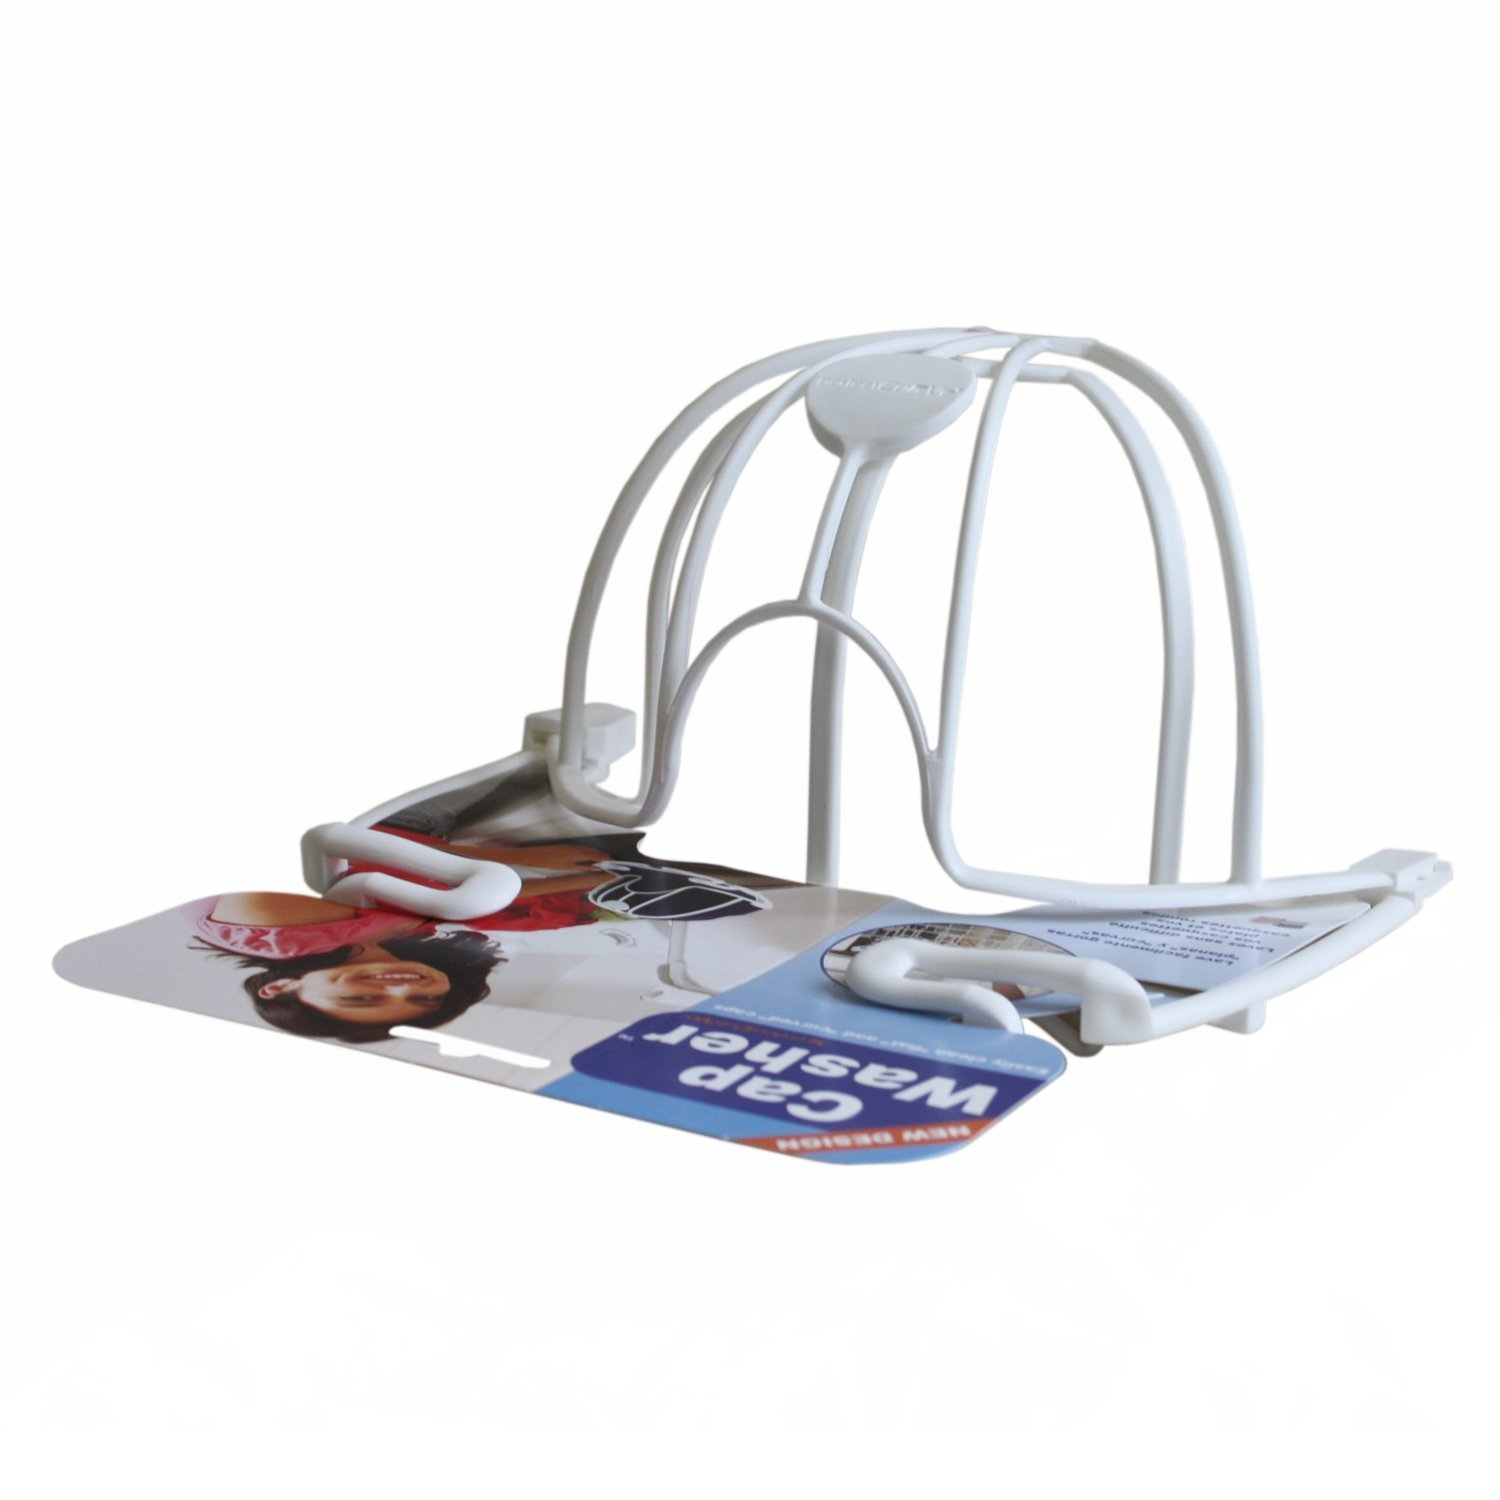 Cap Washer   Perfect Curve 39954A Cap Washer  Amazon.in  Home   Kitchen ae219579cee5